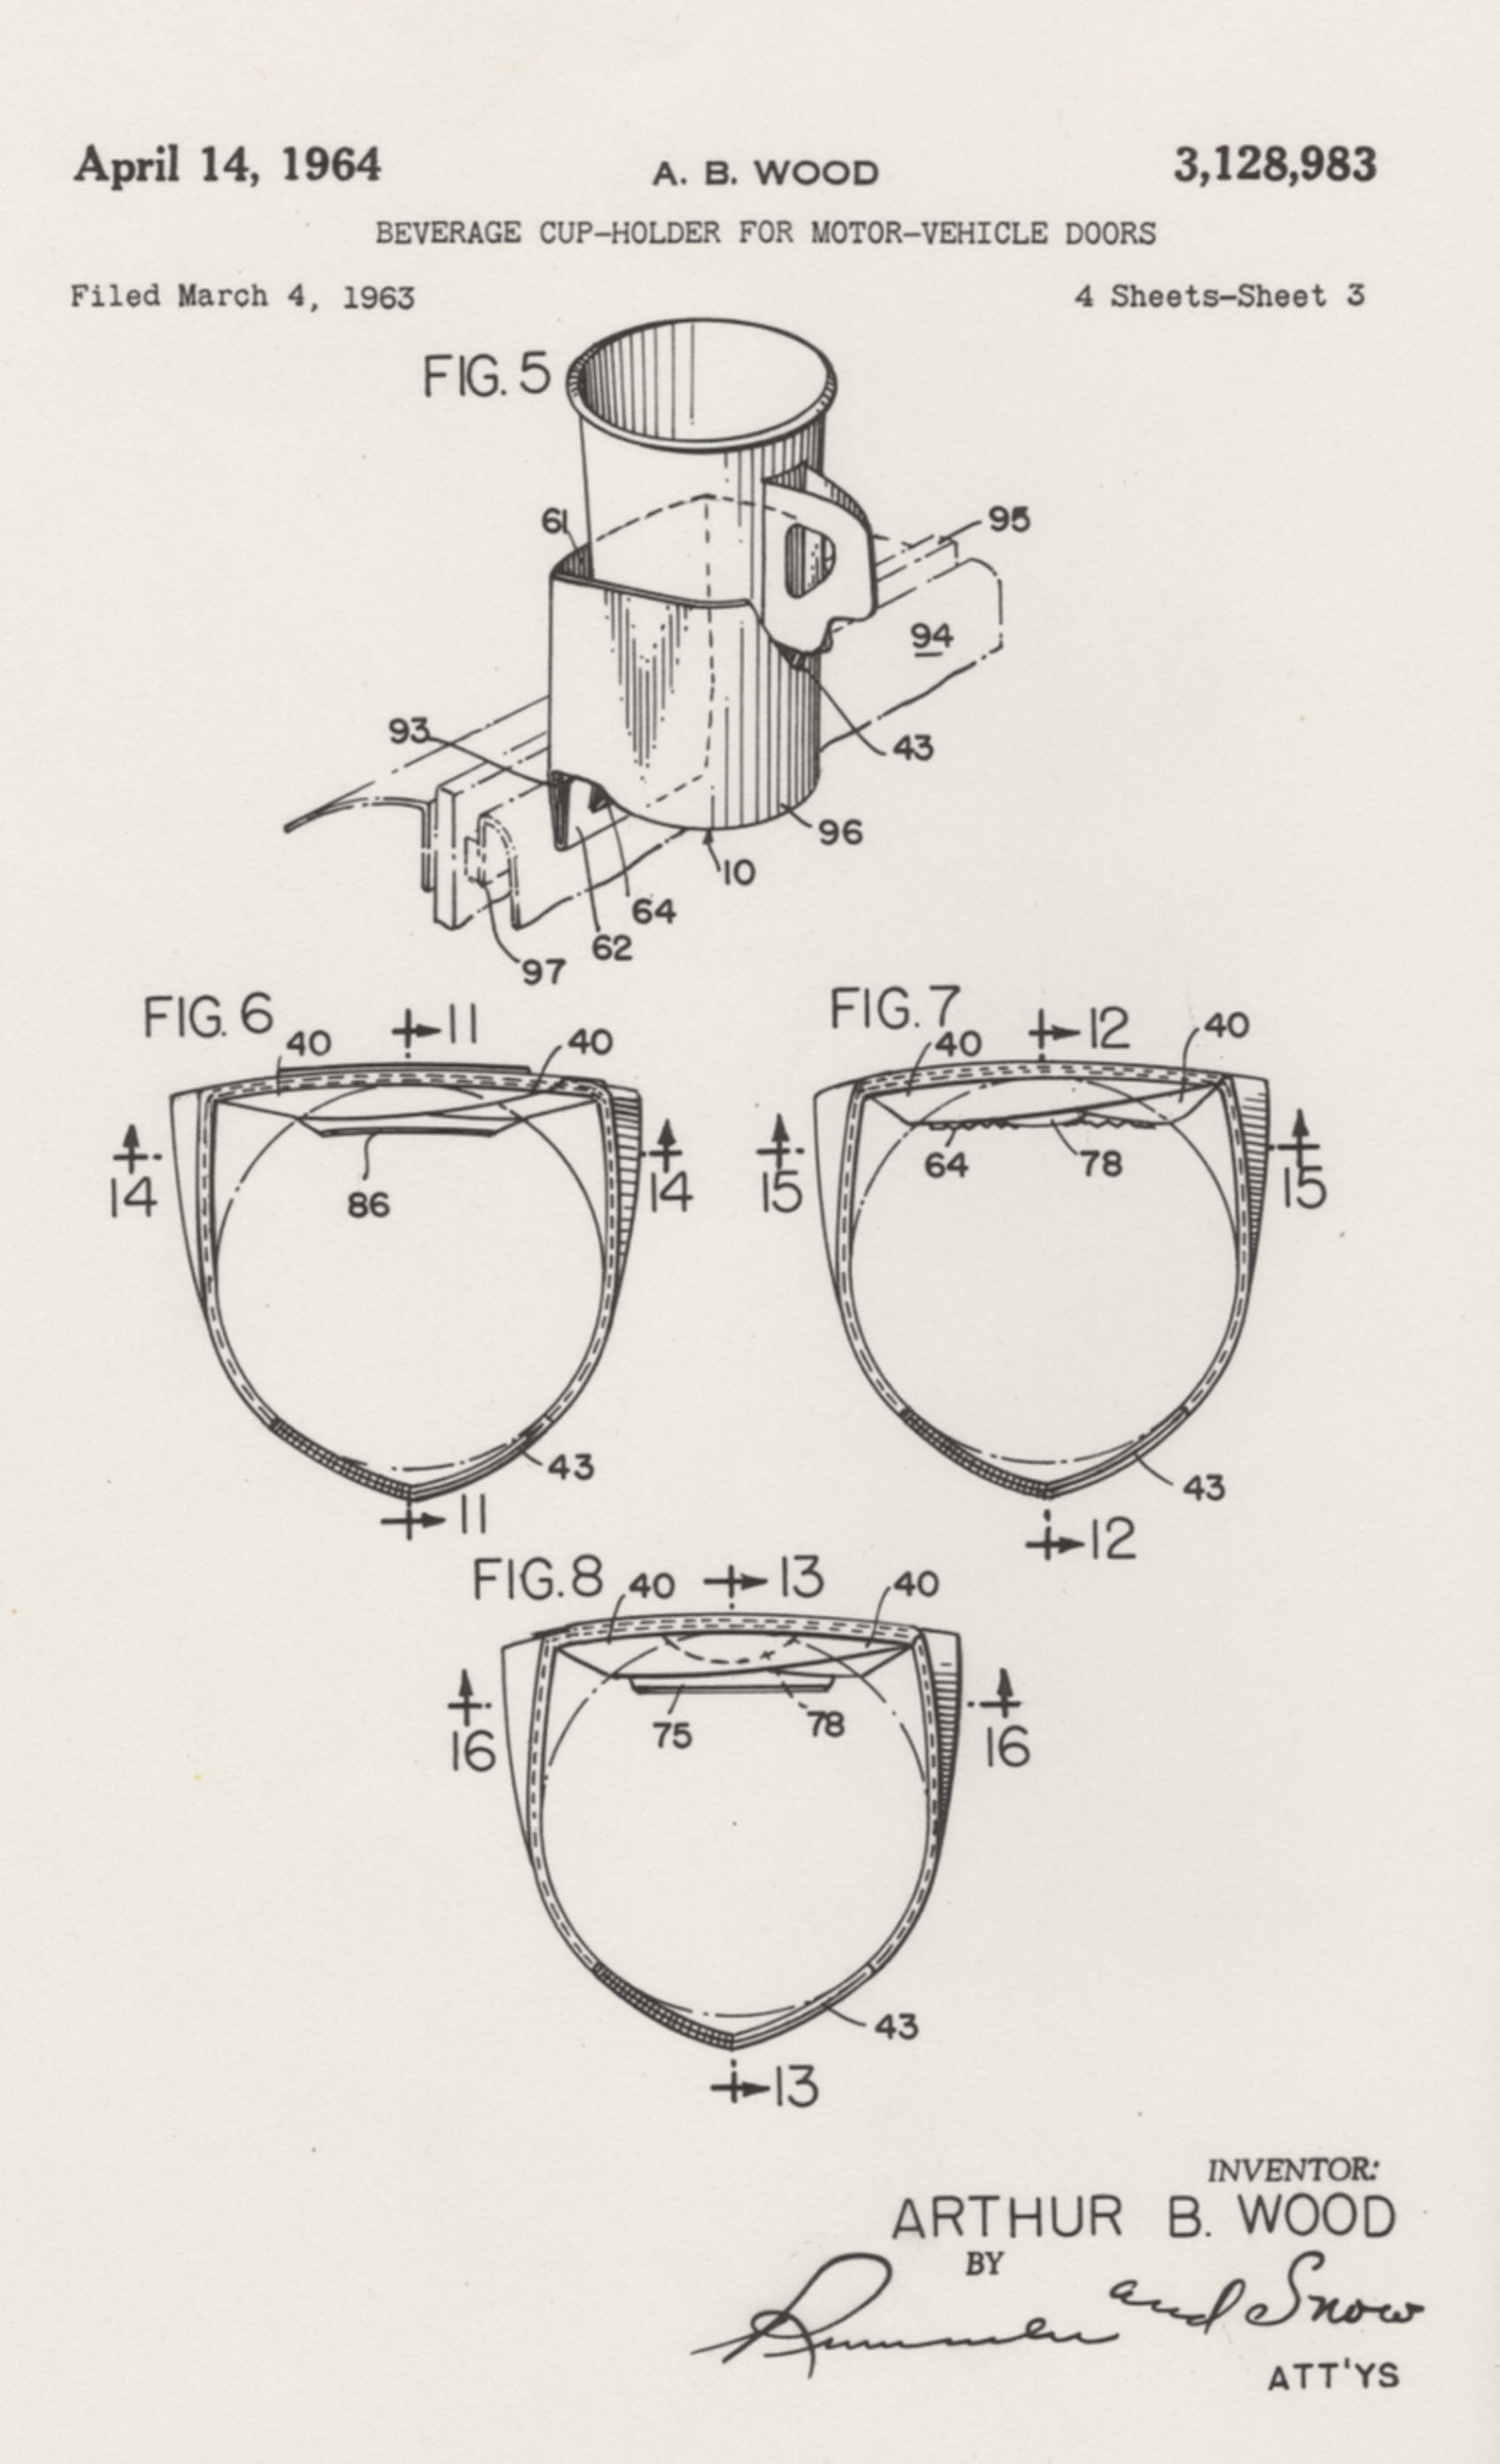 Drawings from a patent for a cup holder